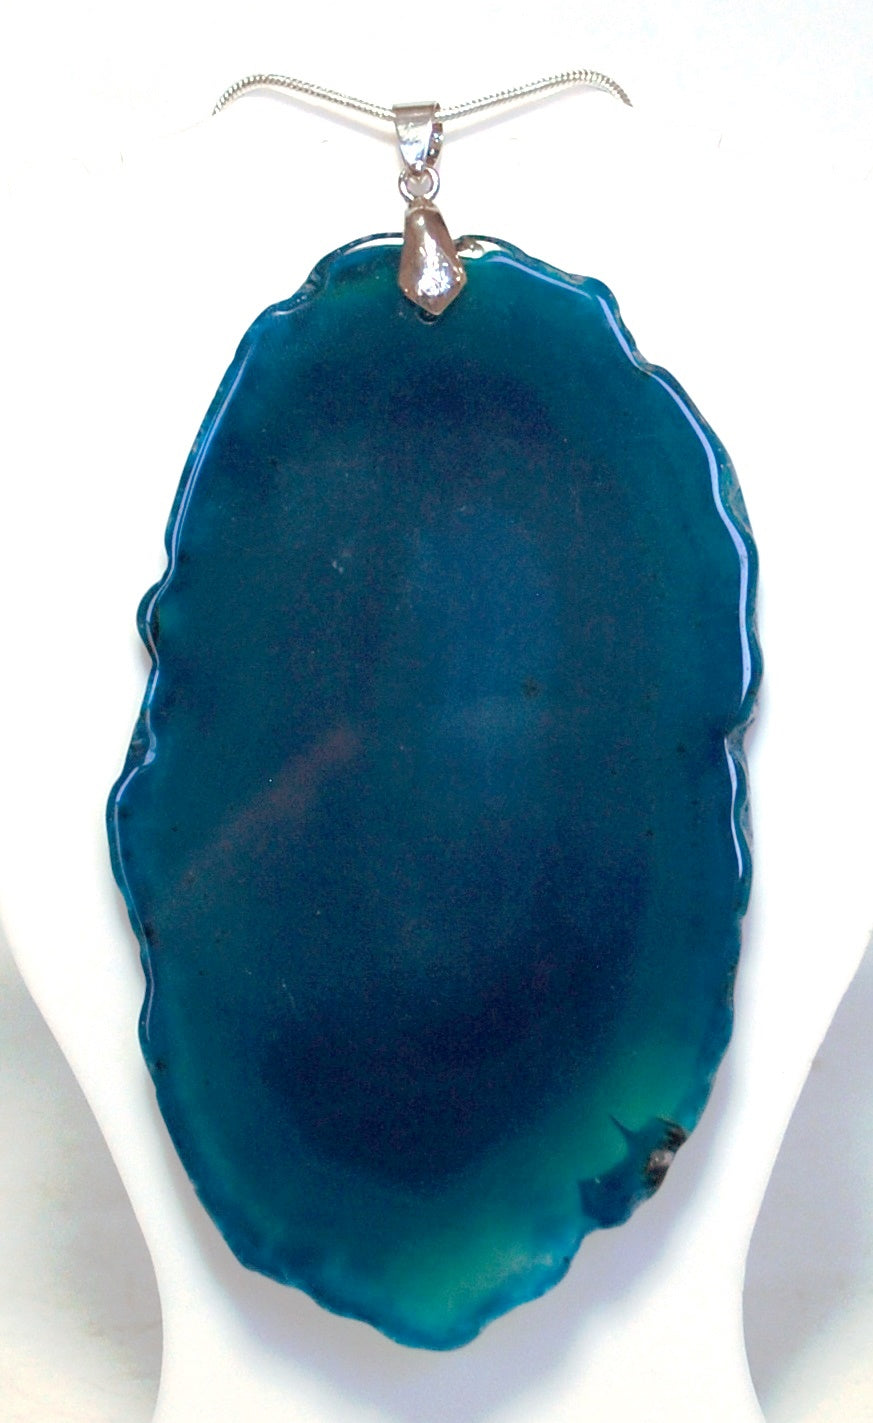 New! Unique One Off Blue Agate Slice Crystal Pendant Necklace With 18